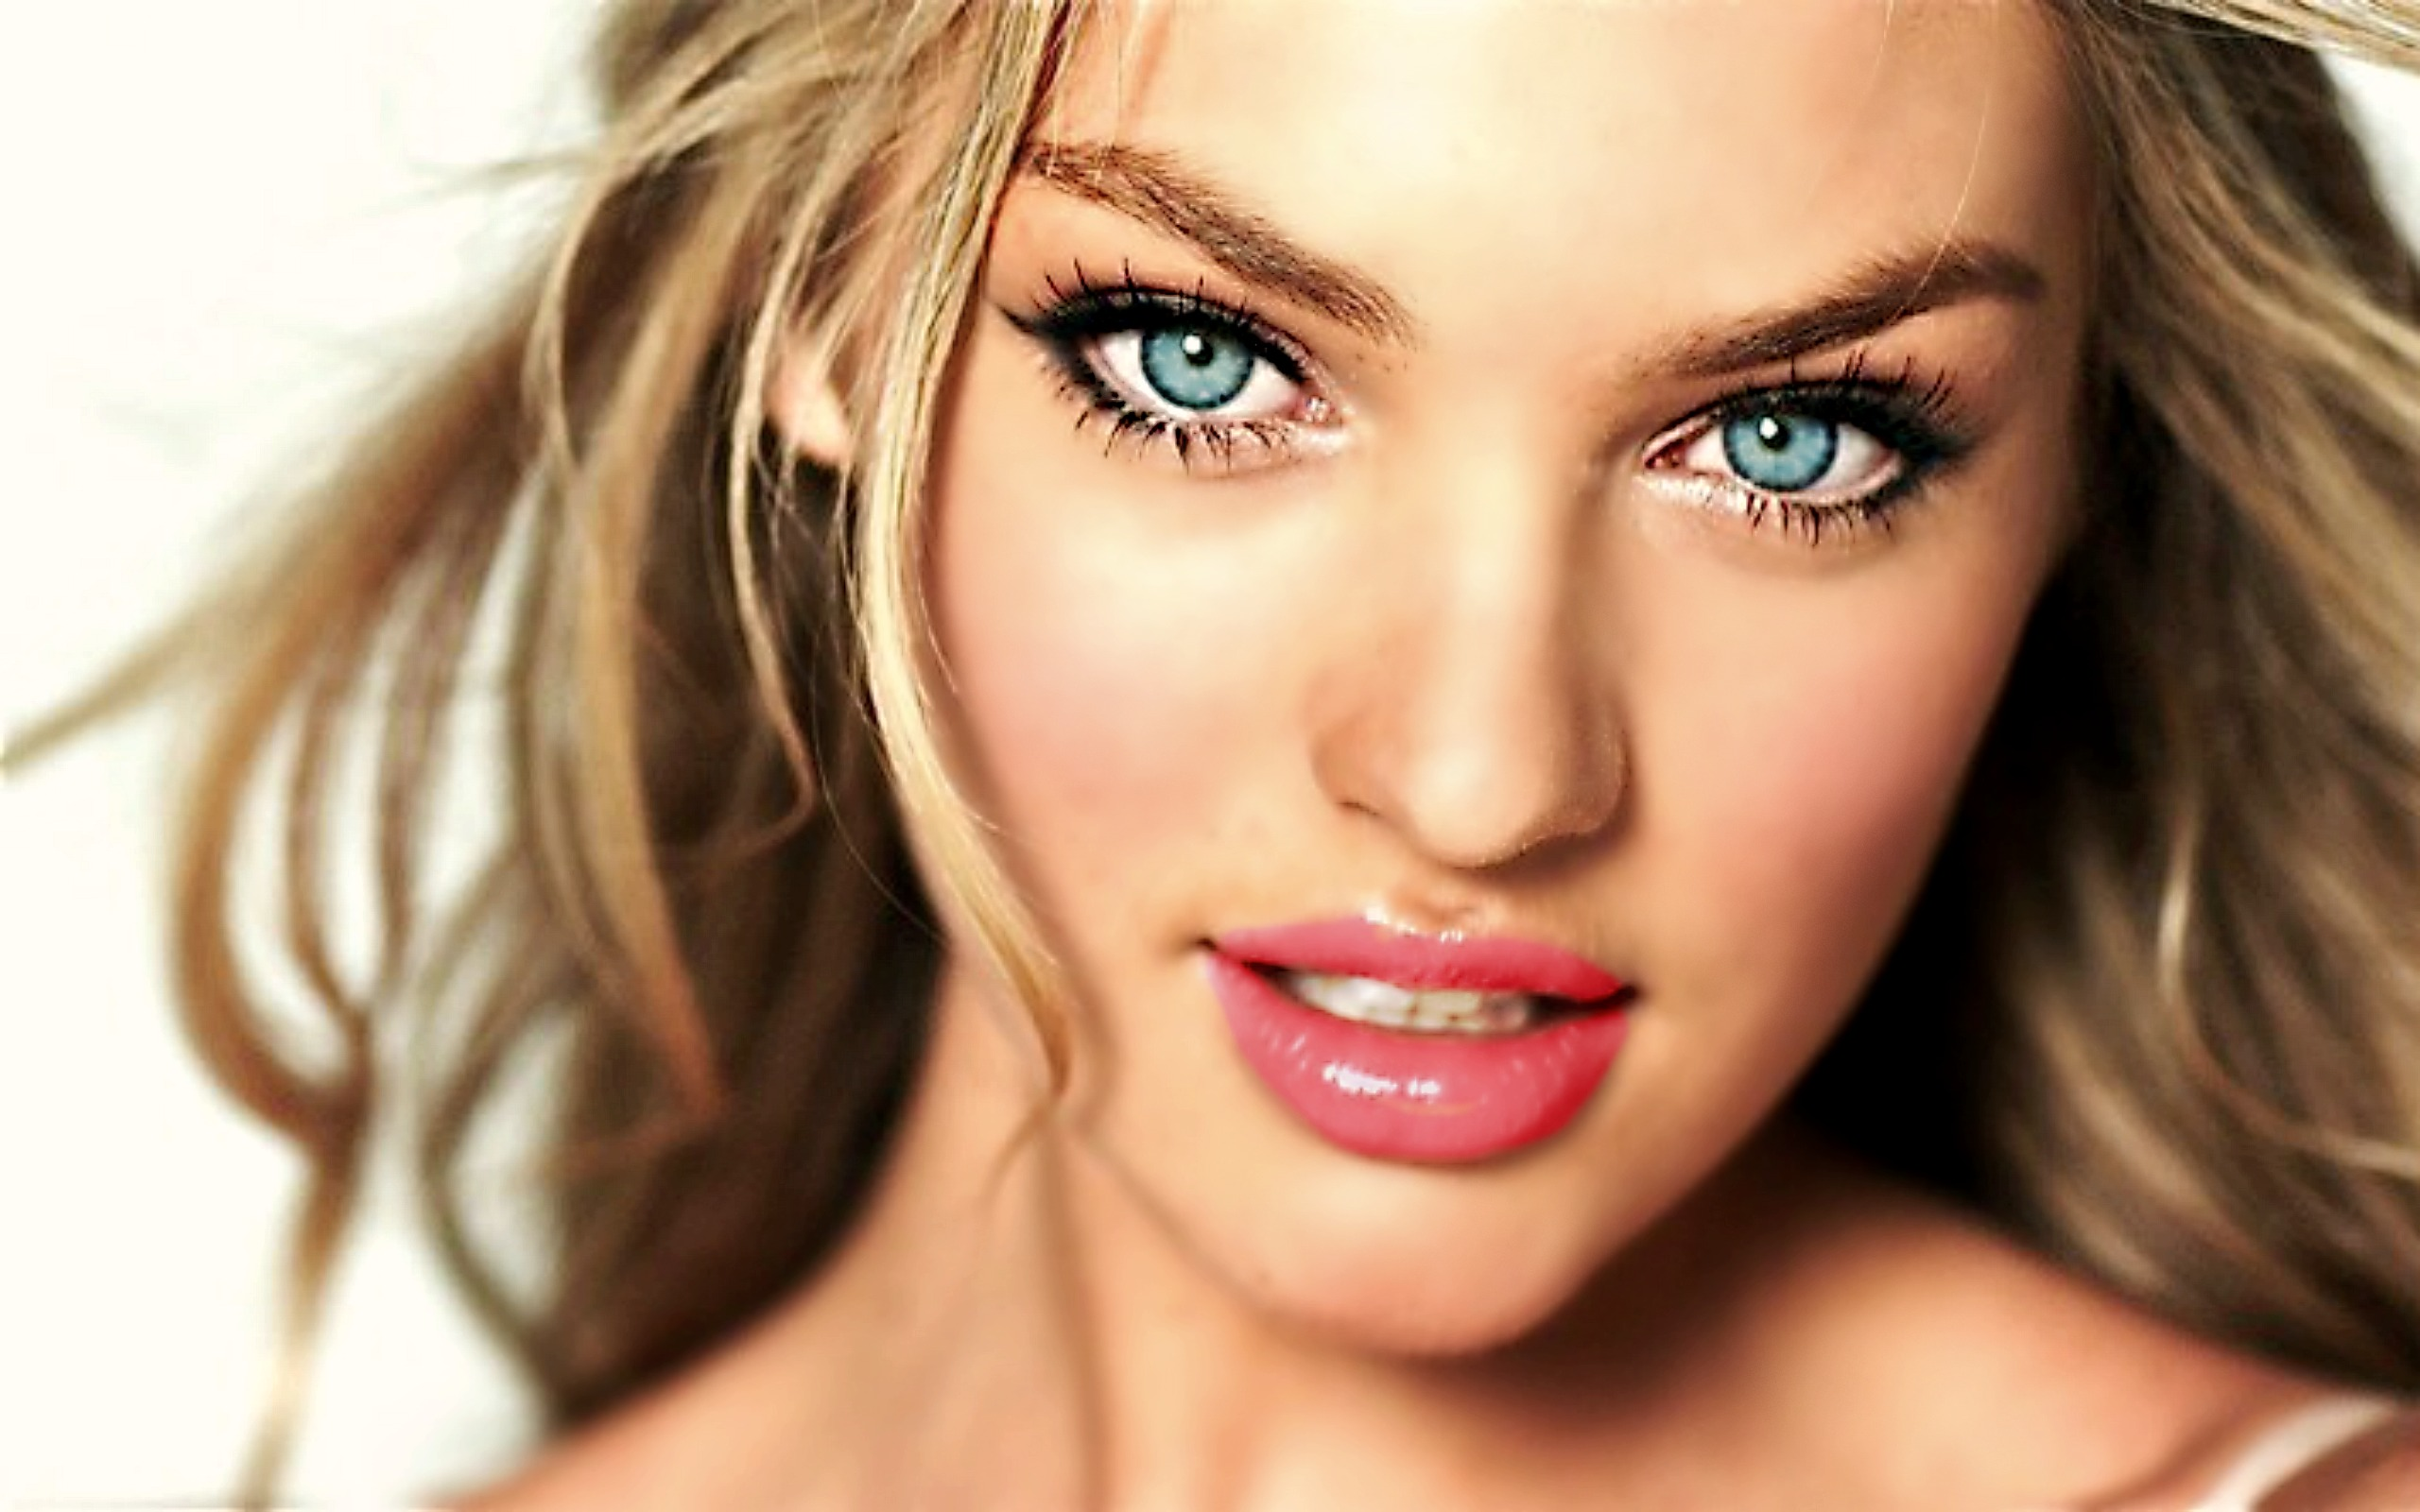 Candice Swanepoel Wallpaper with Blue Eyes